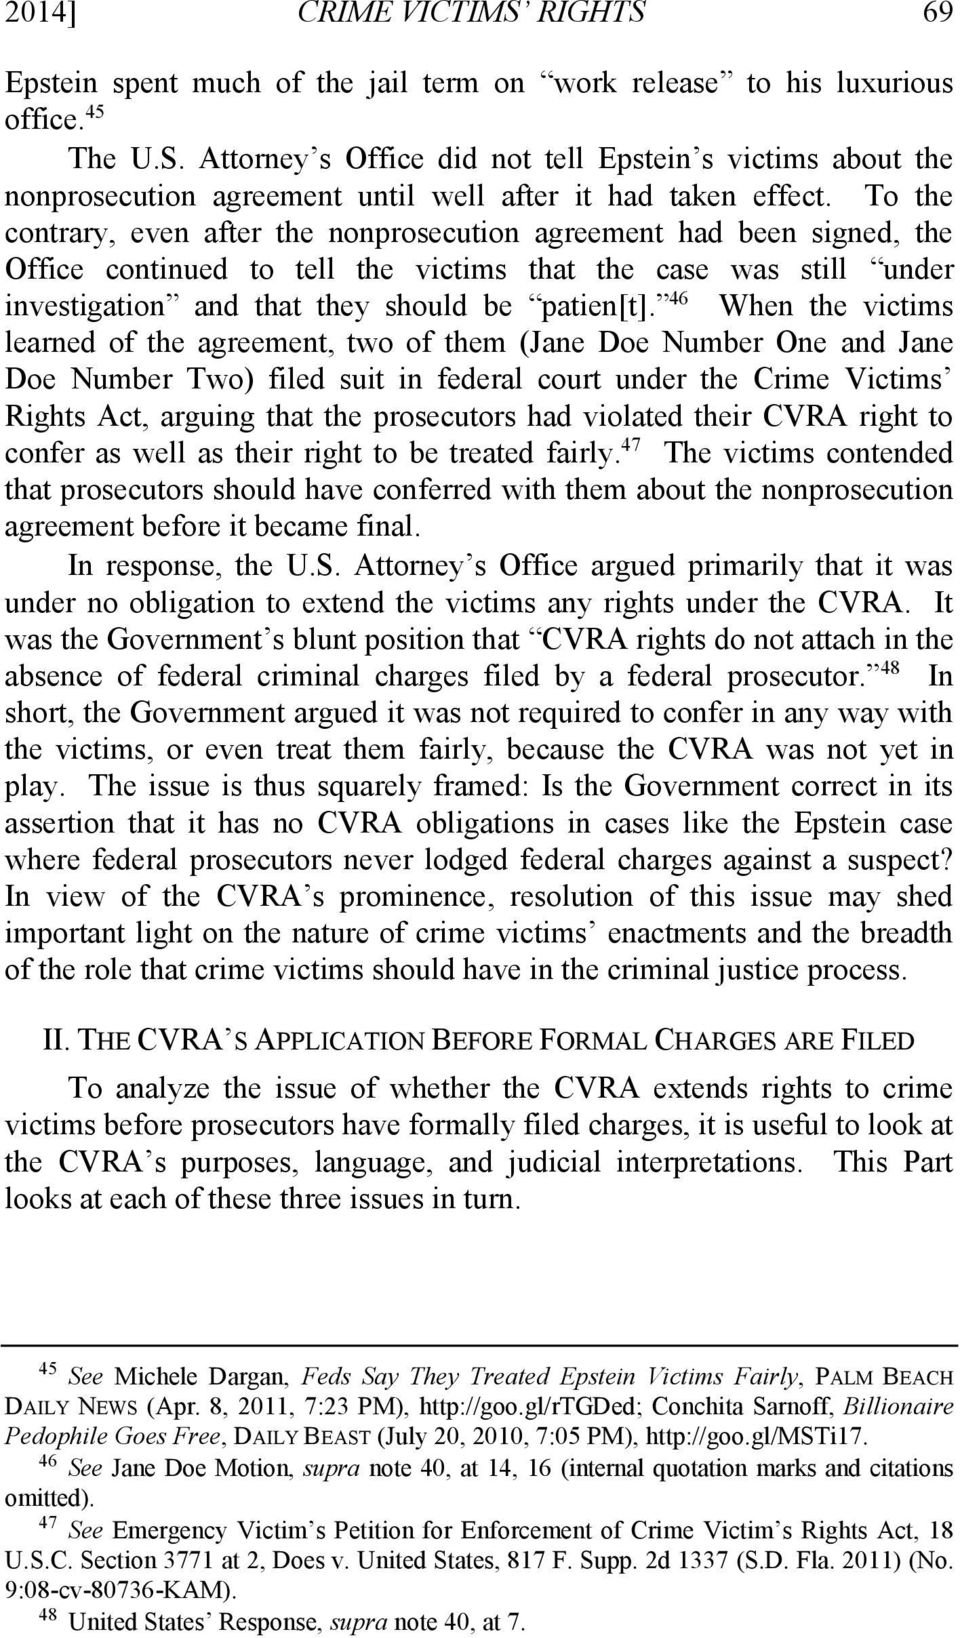 46 When the victims learned of the agreement, two of them (Jane Doe Number One and Jane Doe Number Two) filed suit in federal court under the Crime Victims Rights Act, arguing that the prosecutors